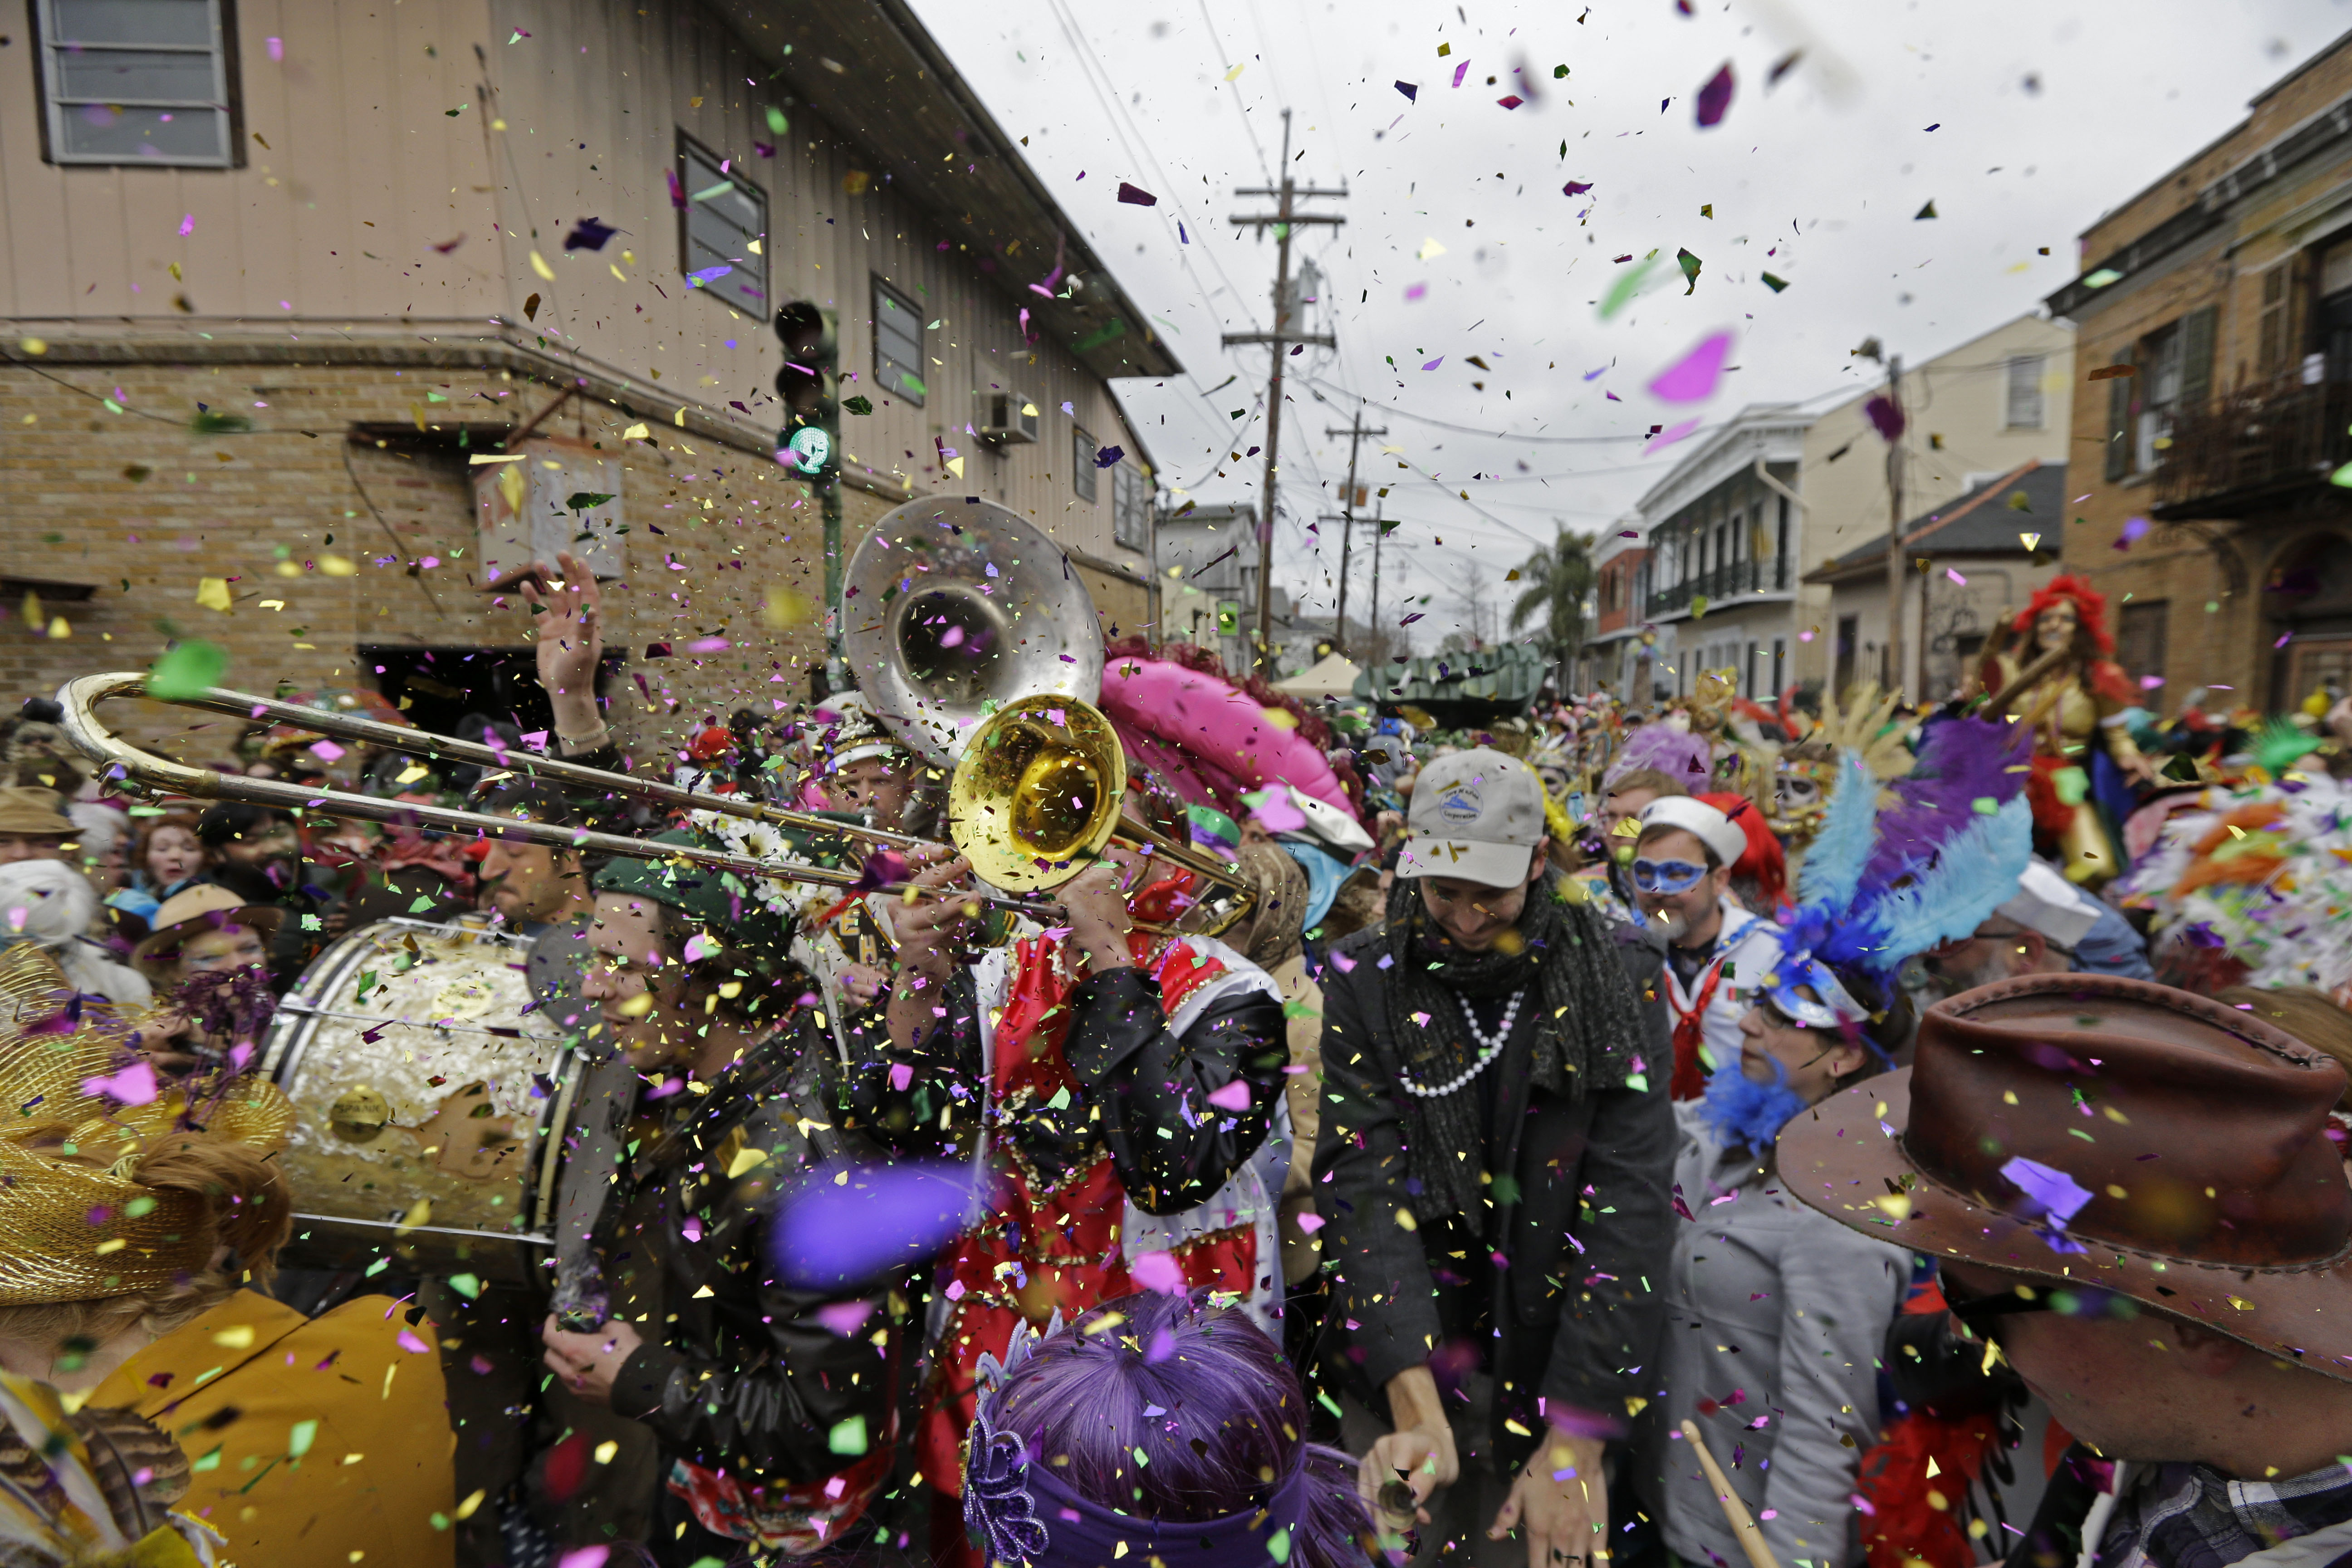 Revelers gather in New Orleans for Mardi Gras - News Radio KMAN